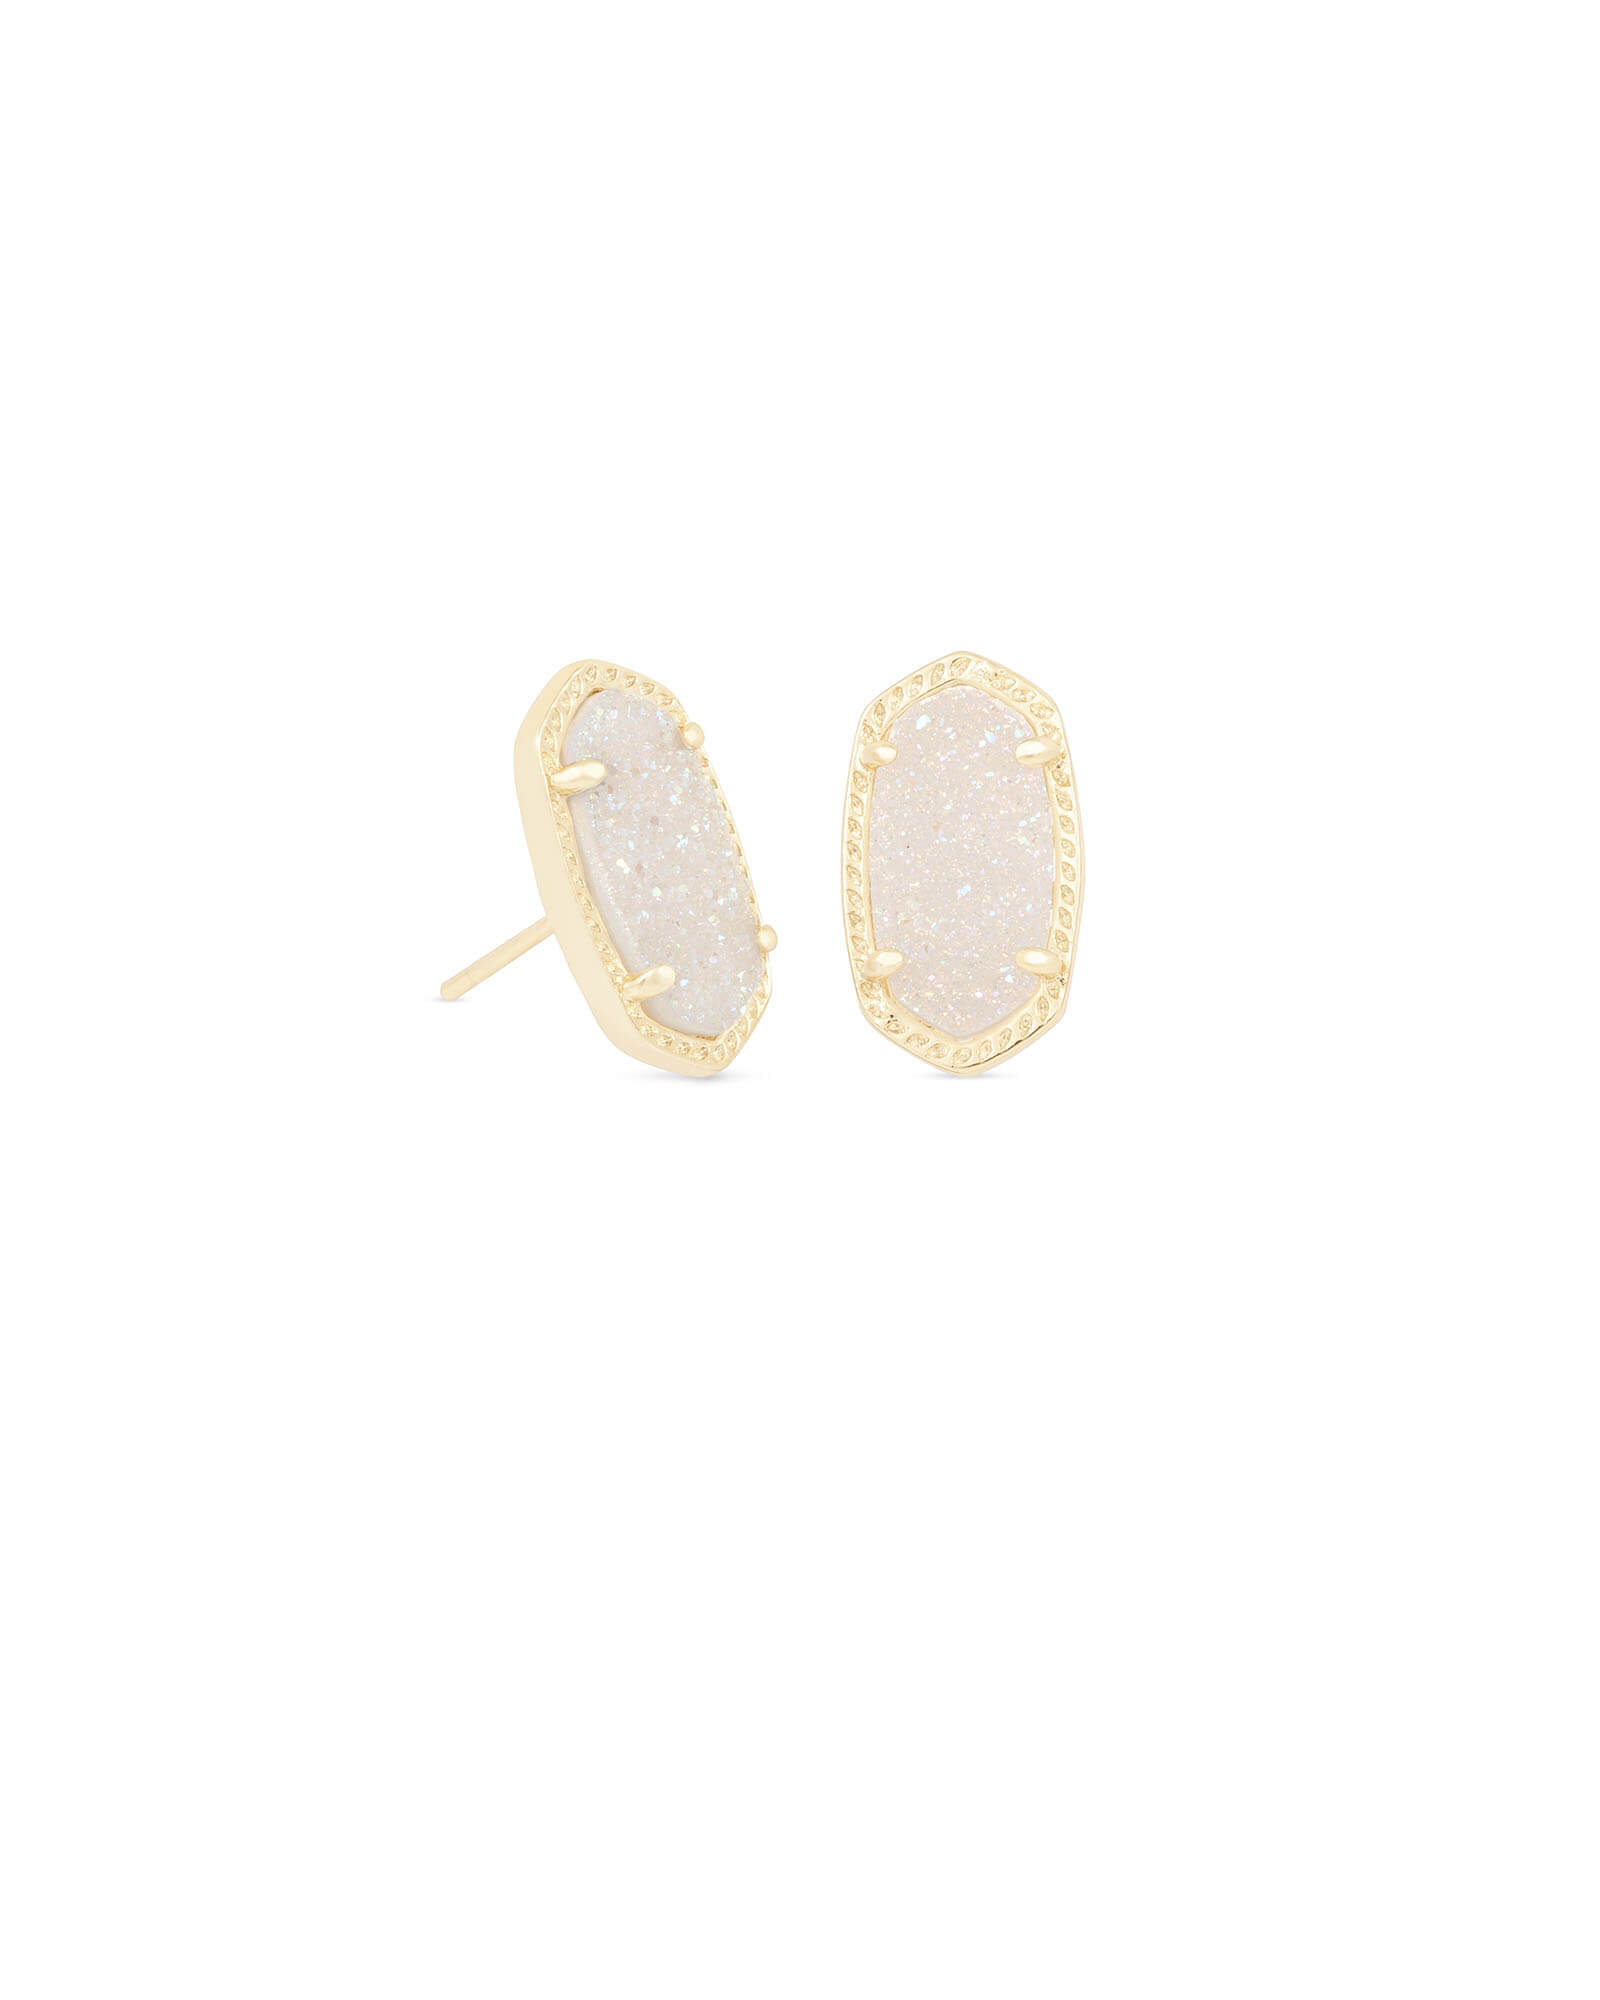 Ellie Stud Earrings in Gold